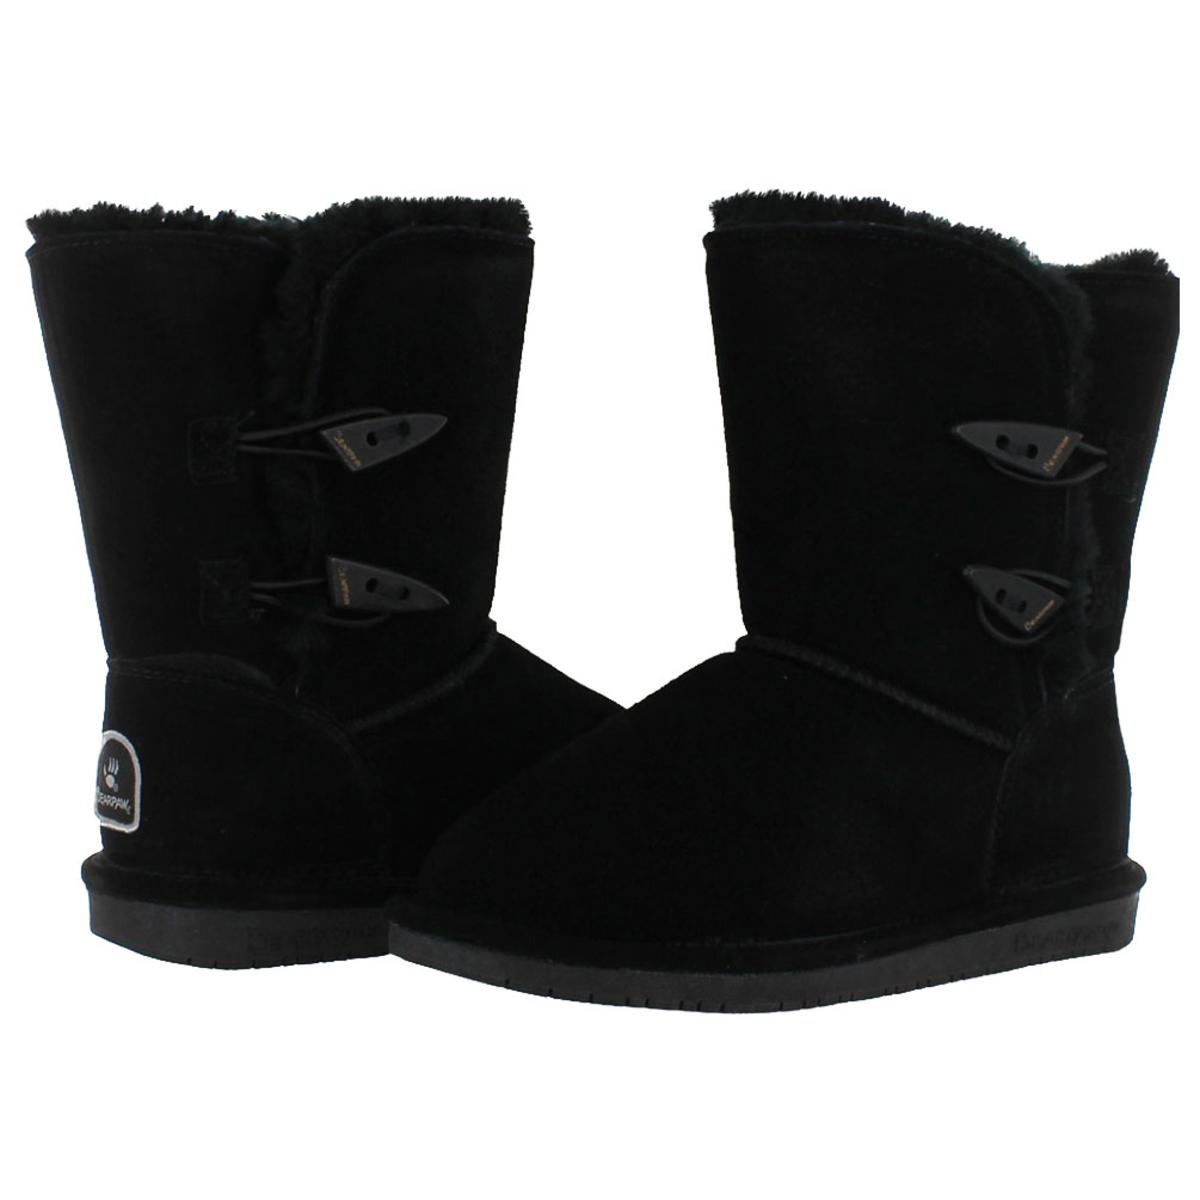 Bearpaw-Abigail-Women-039-s-Suede-Toggle-Sheepskin-Winter-Boots